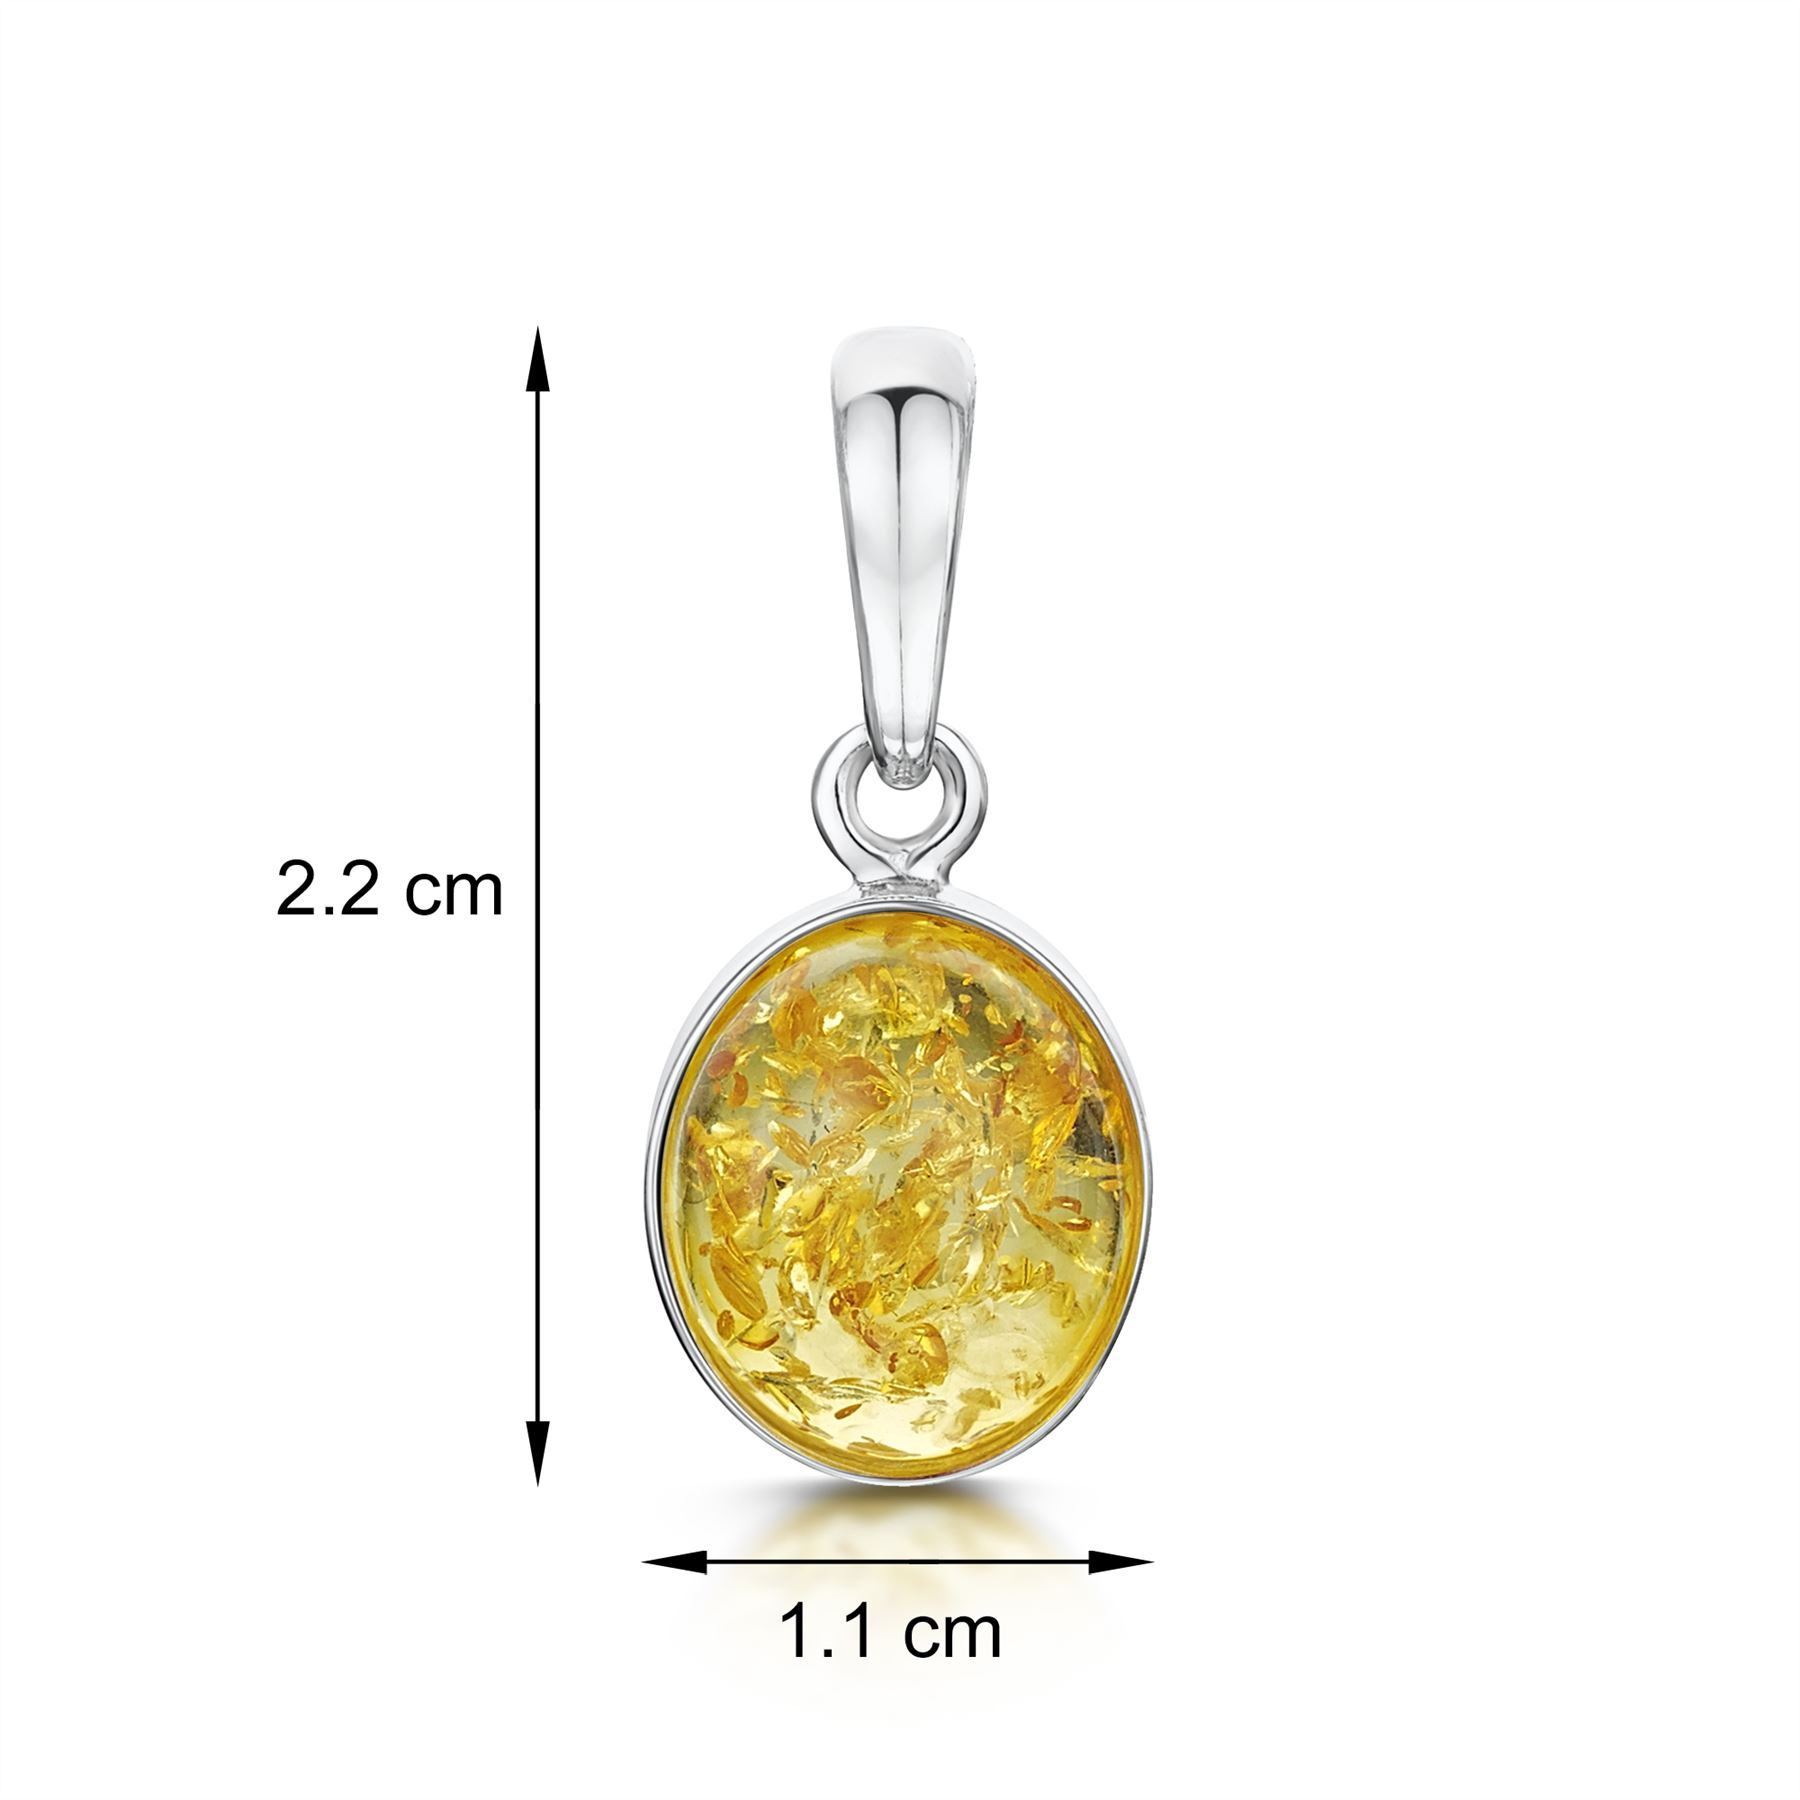 Amberta-Genuine-925-Sterling-Silver-Pendant-with-Natural-Baltic-Amber-Gemstone thumbnail 8